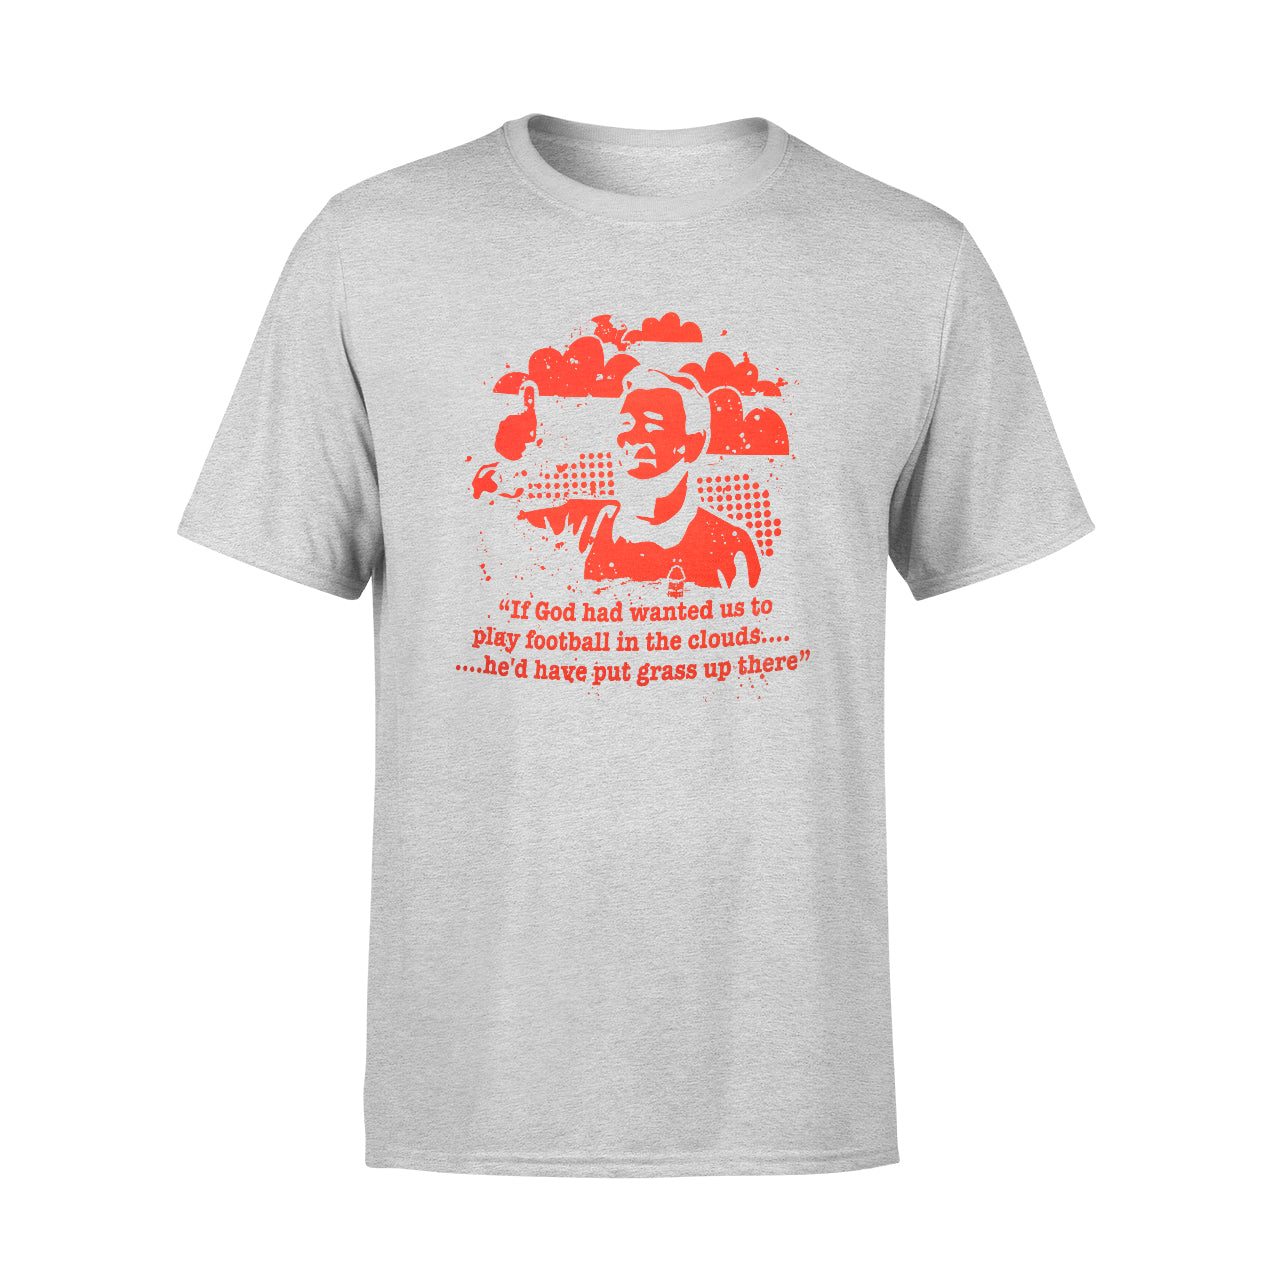 NFFC Mens Grey Marl Clough T-Shirt